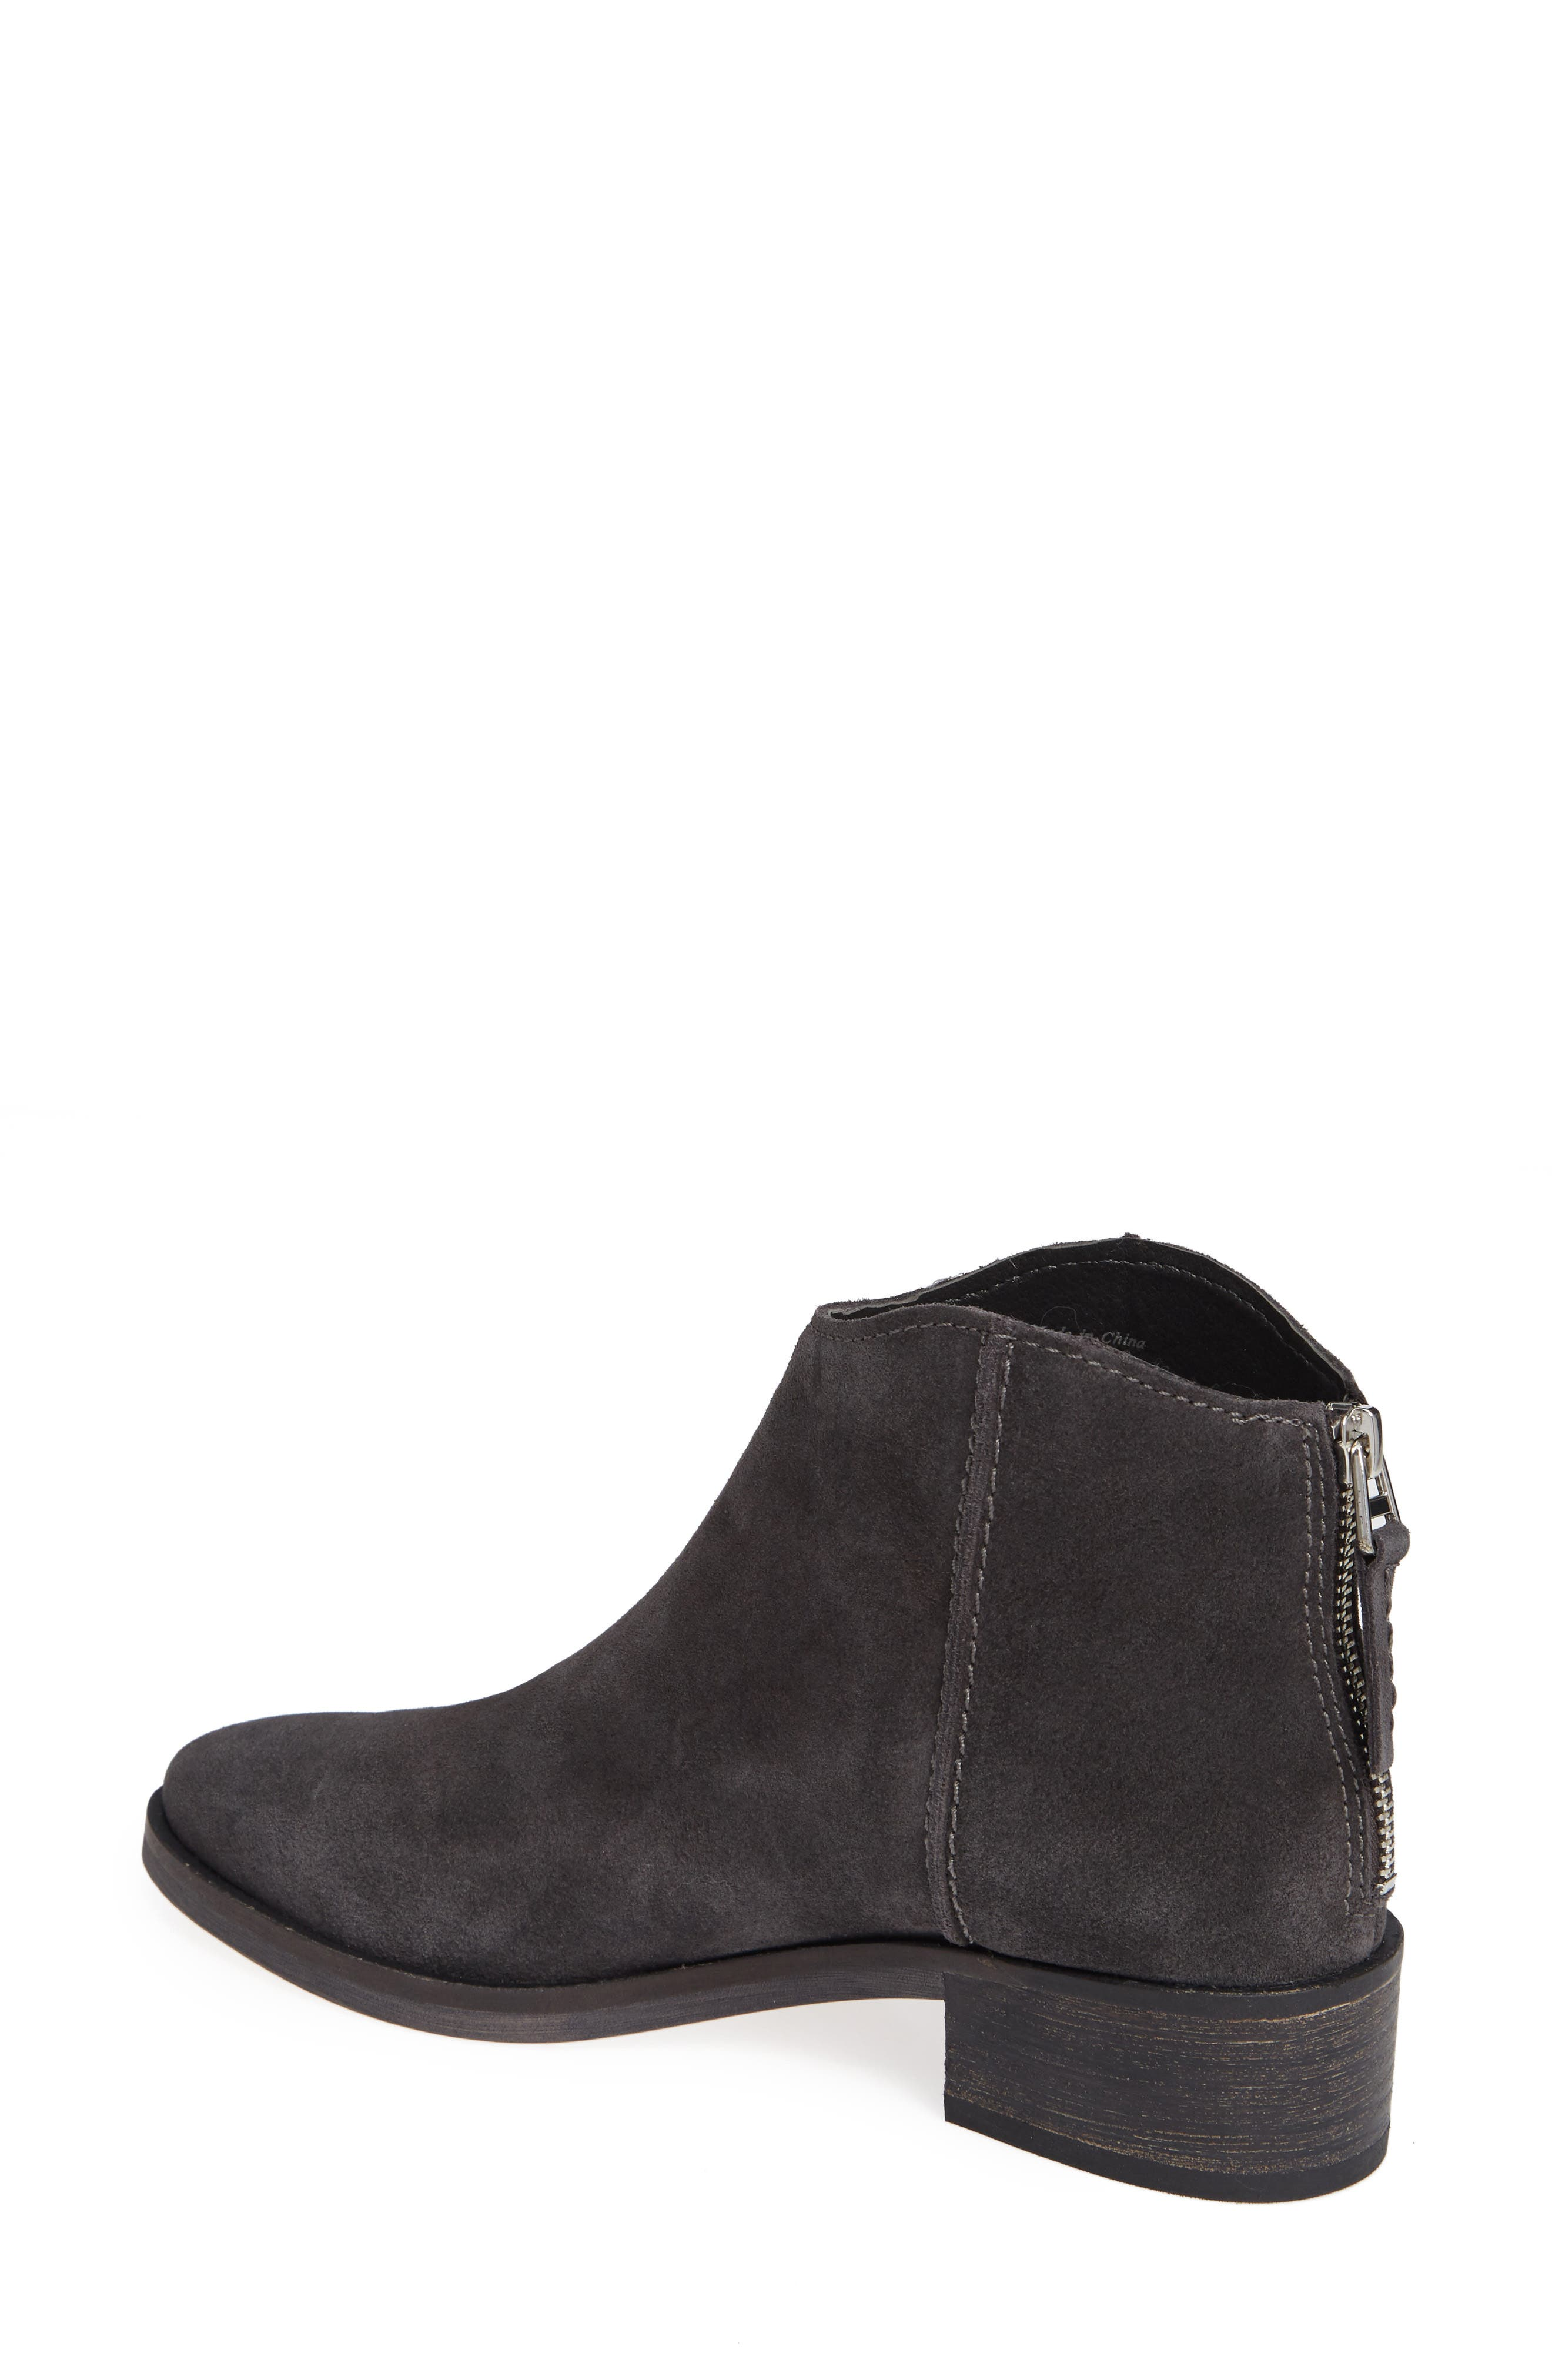 Tucker Bootie,                             Alternate thumbnail 2, color,                             ANTHRACITE SUEDE